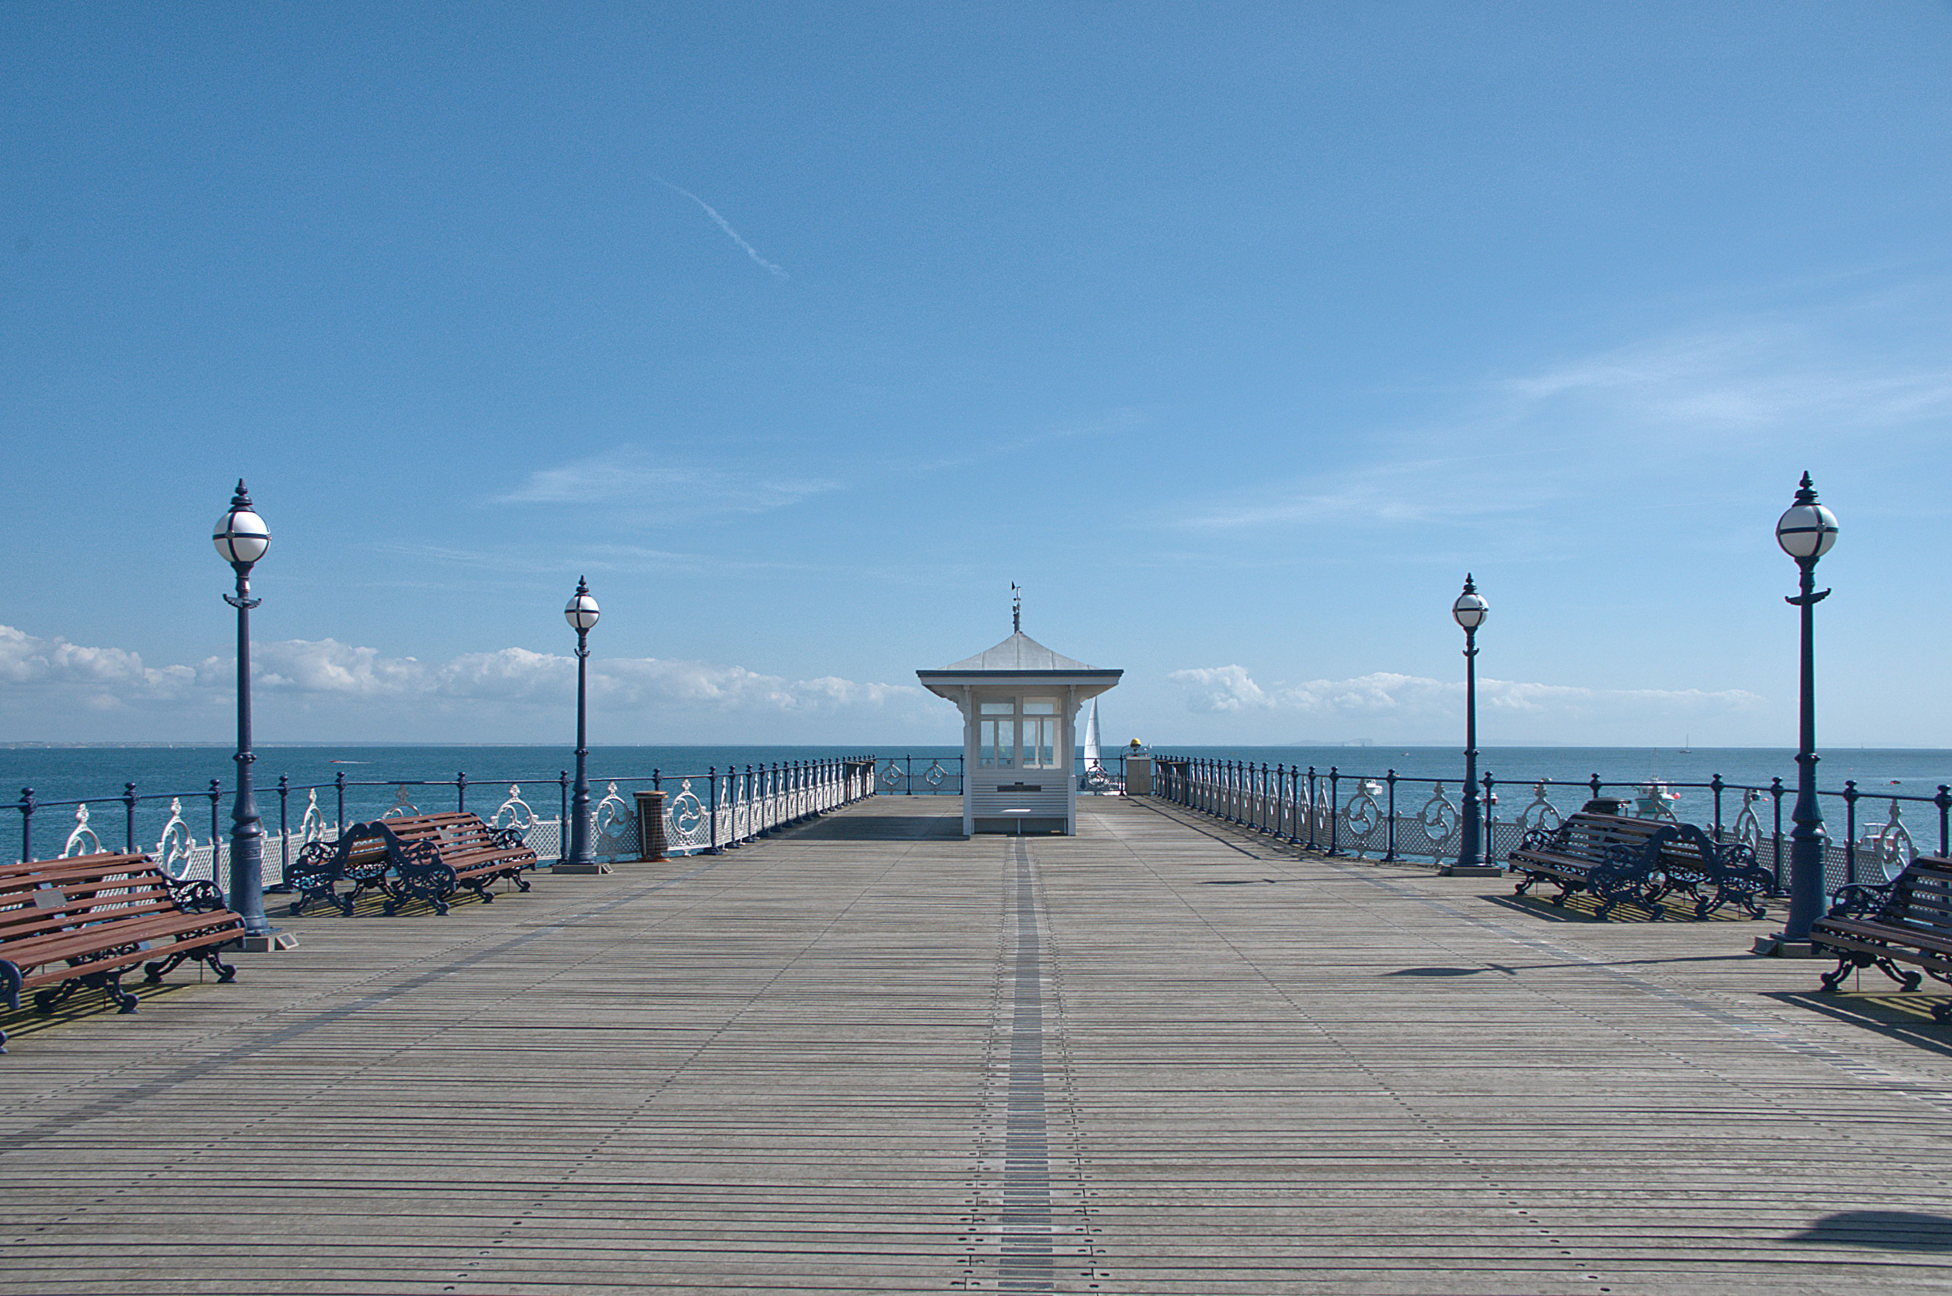 Pause on the Pier - Mindfulness Walk